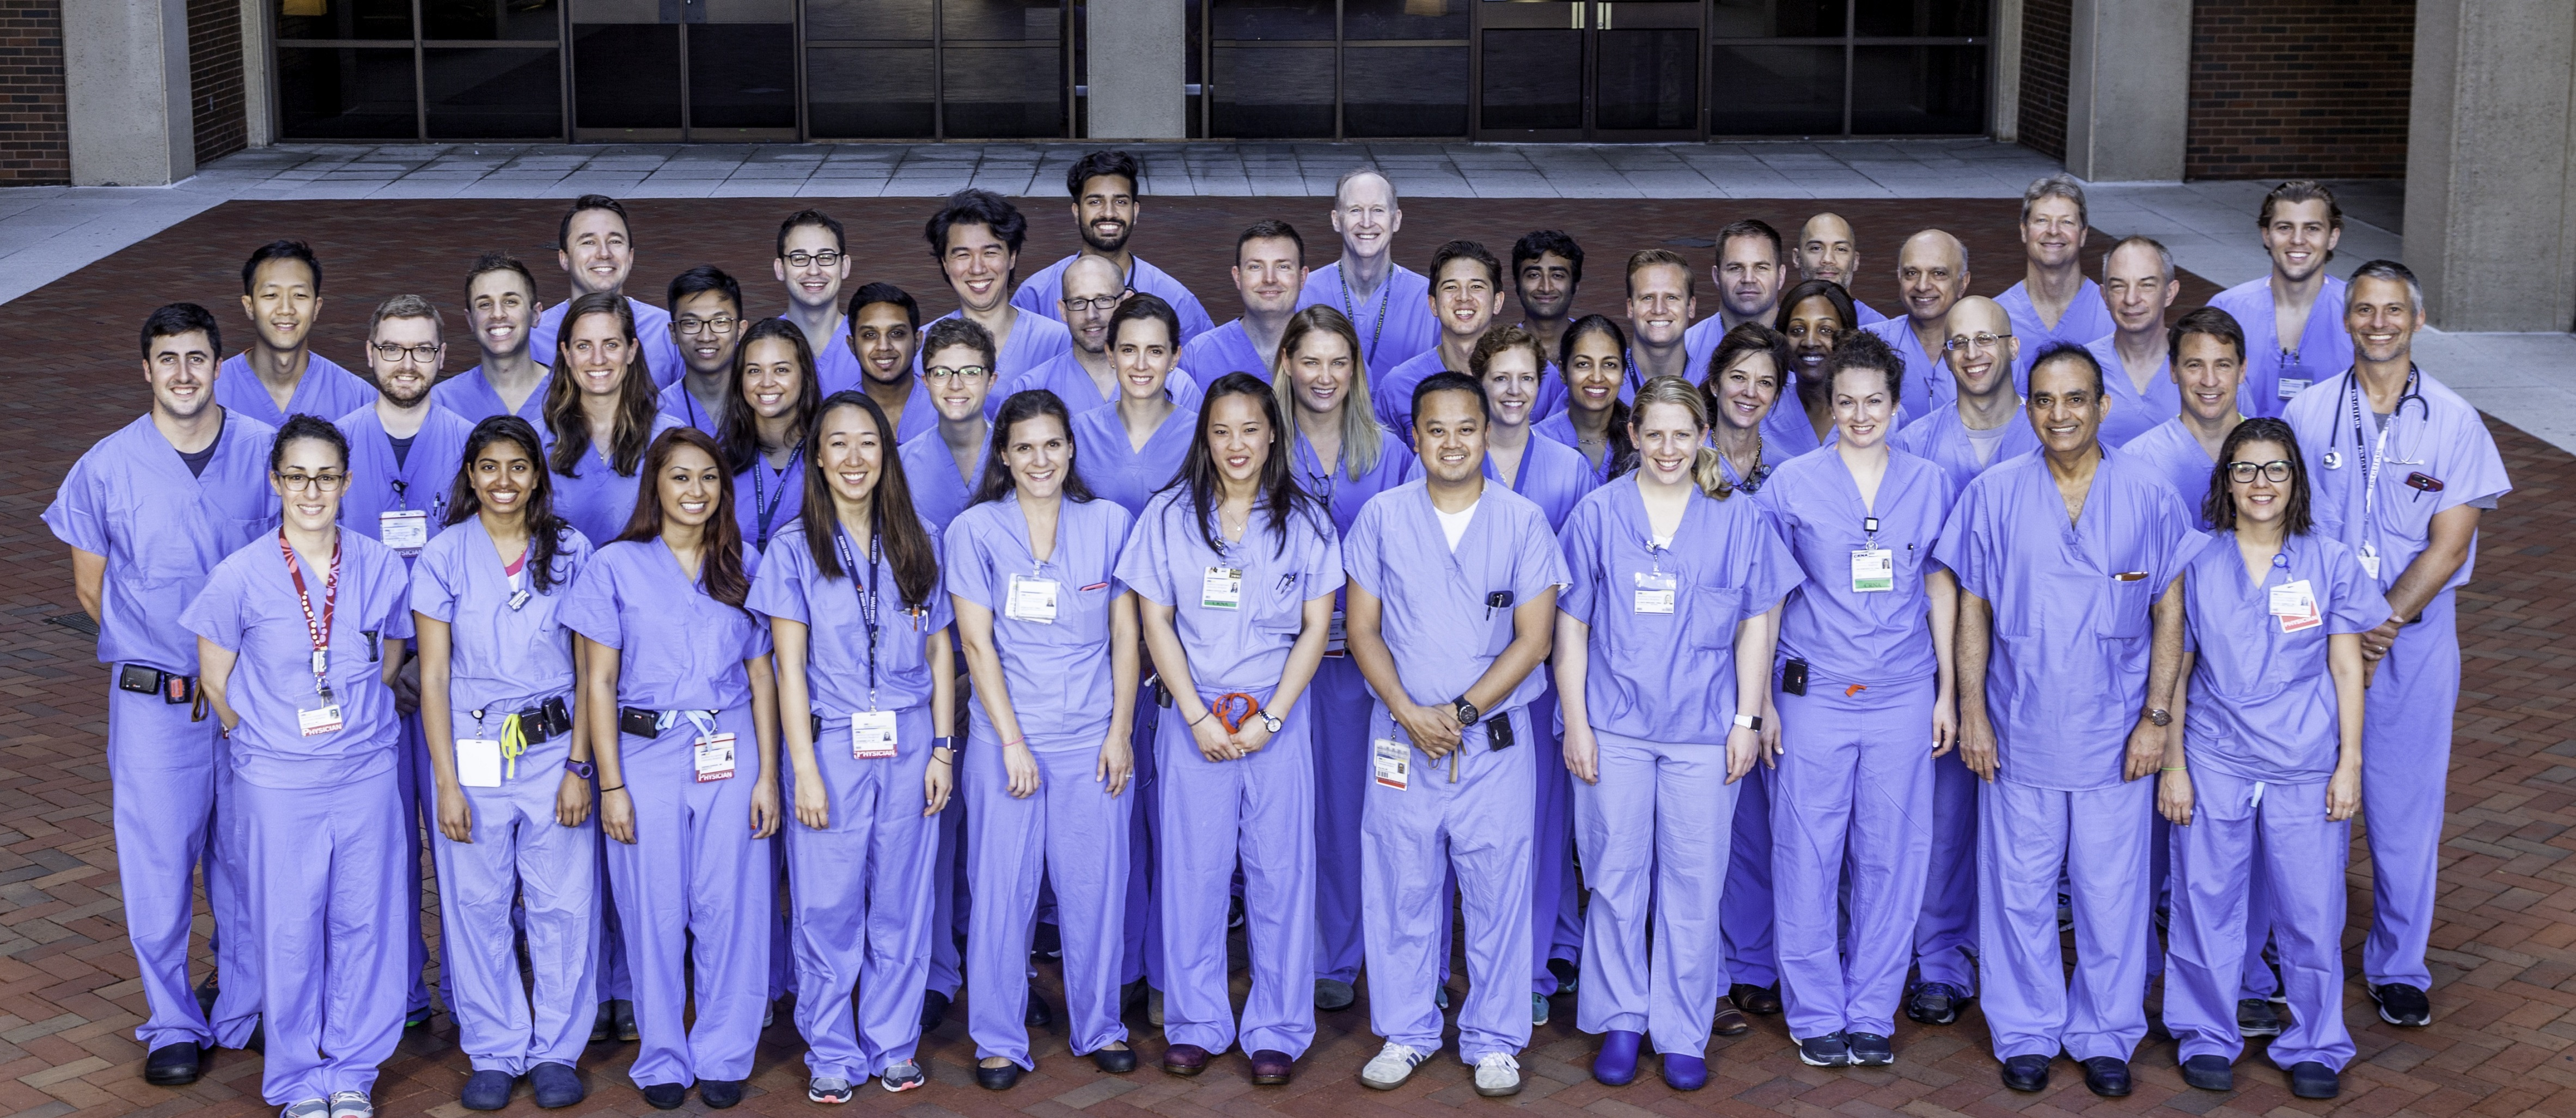 Faculty | Department of Anesthesiology | Georgetown University